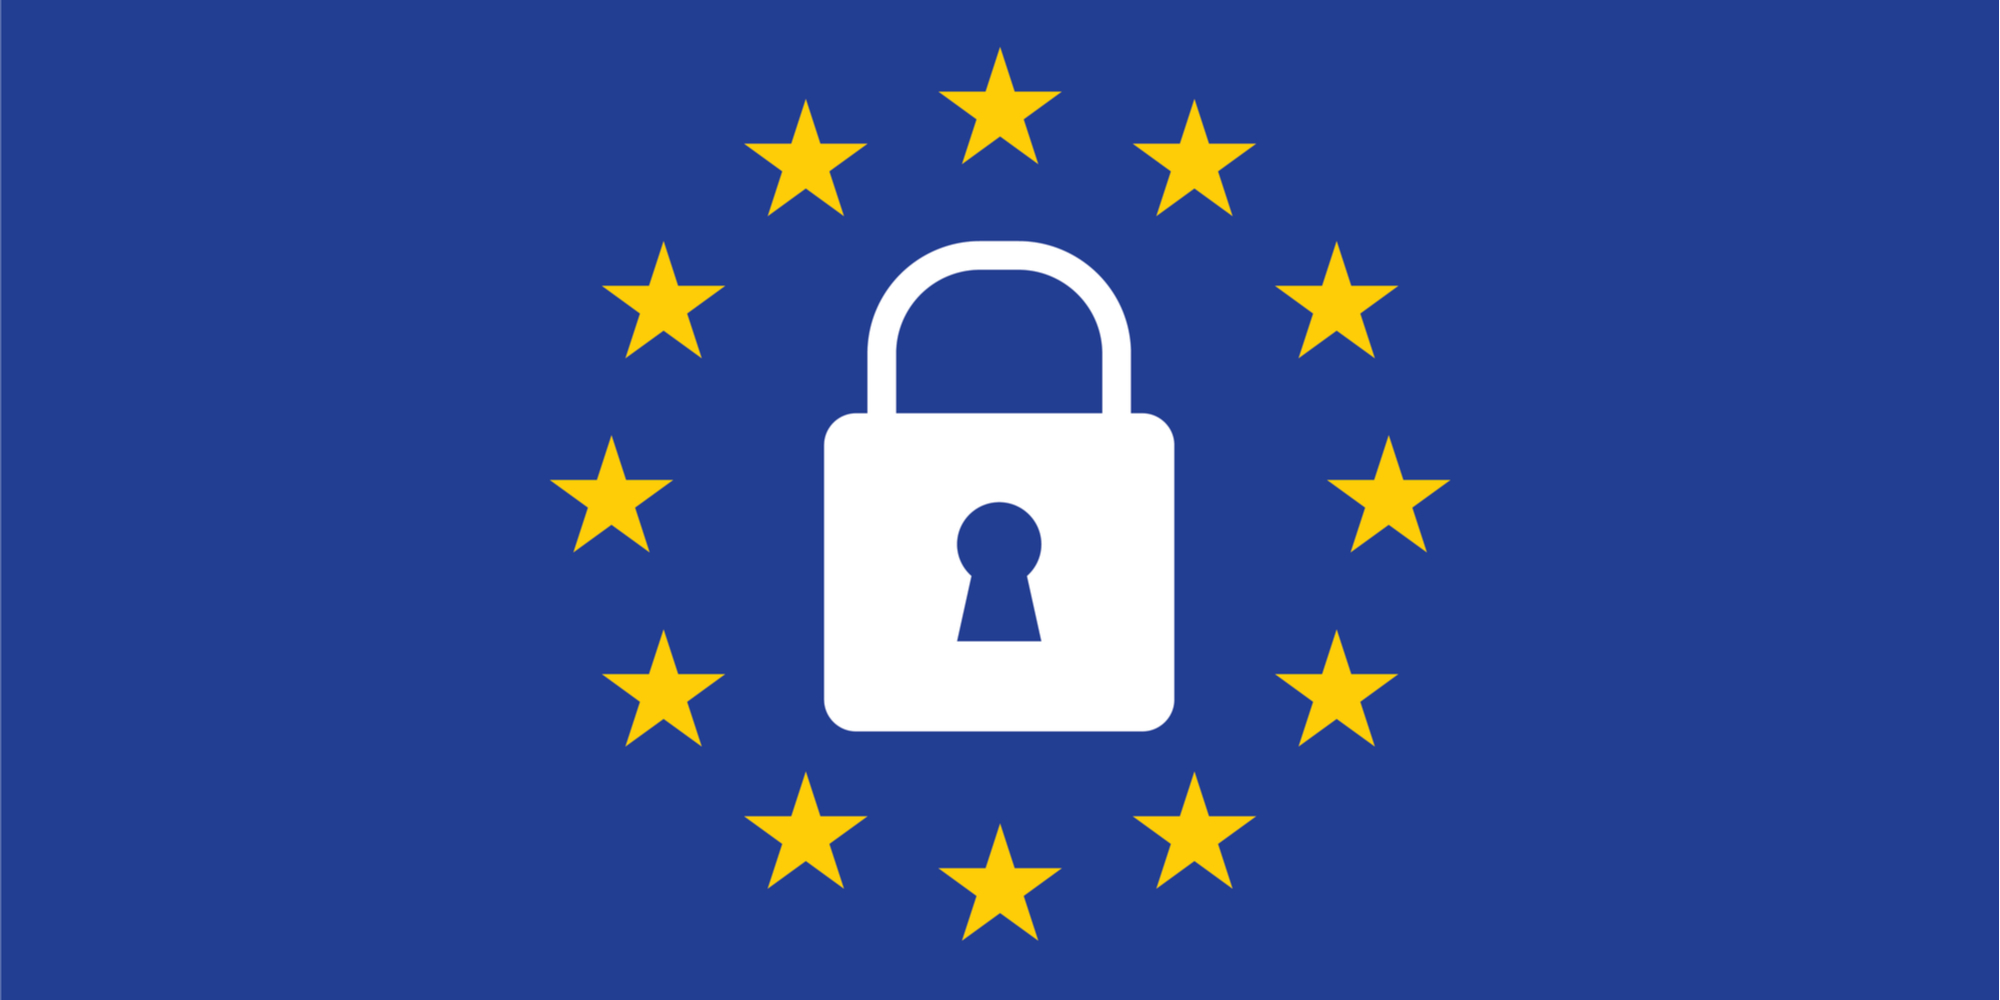 lock surrounded by EU flag stars